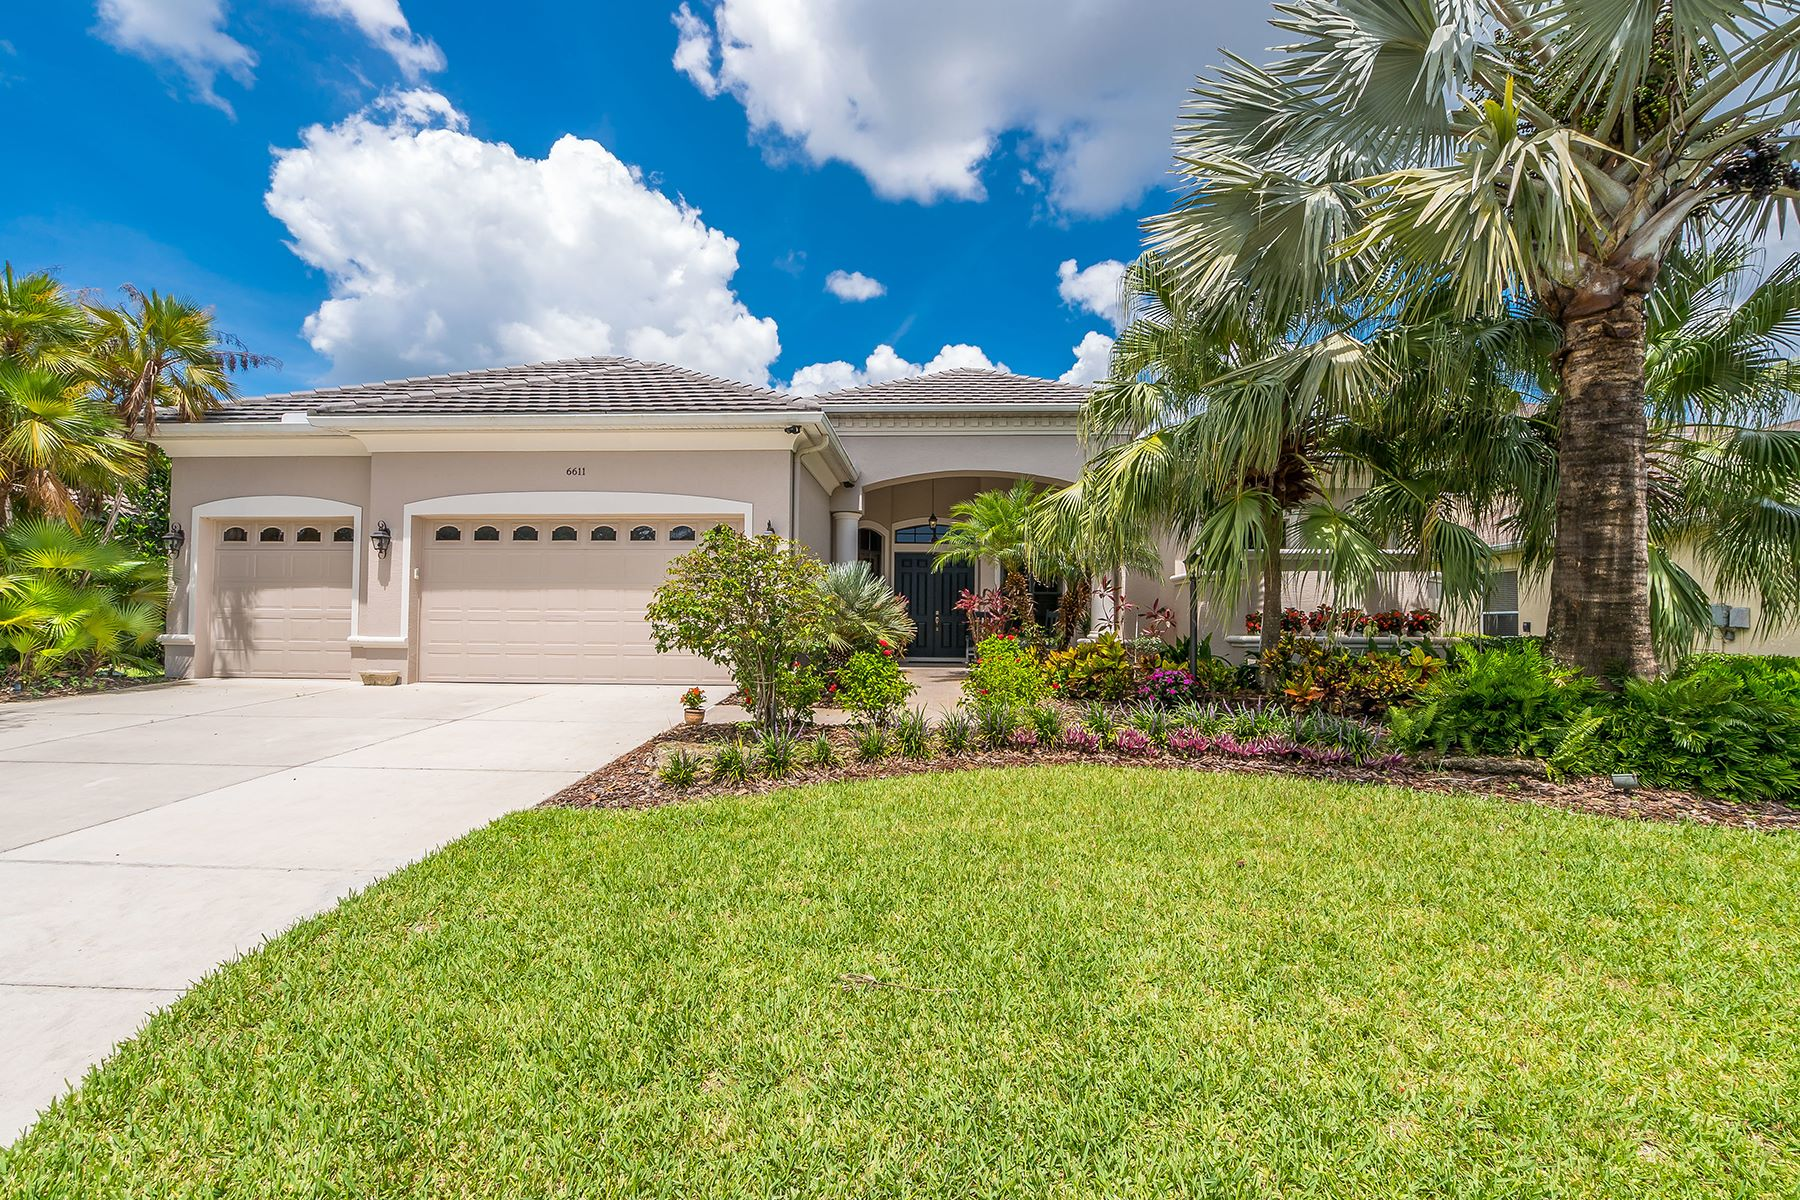 Single Family Home for Sale at GREENBROOK VILLAGE 6611 Coopers Hawk Ct, Lakewood Ranch, Florida 34202 United States